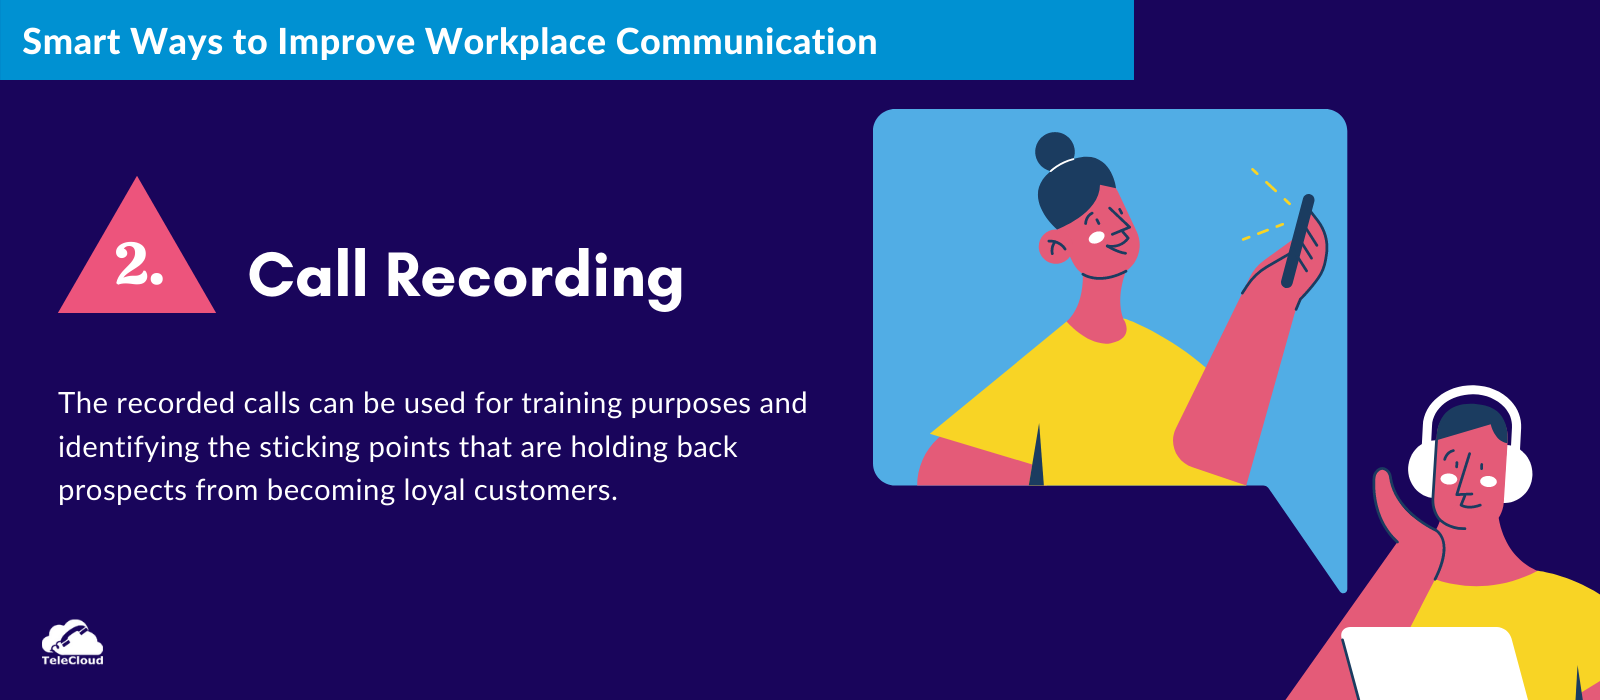 Call Recording to Improve Workplace Communication - TeleCloud